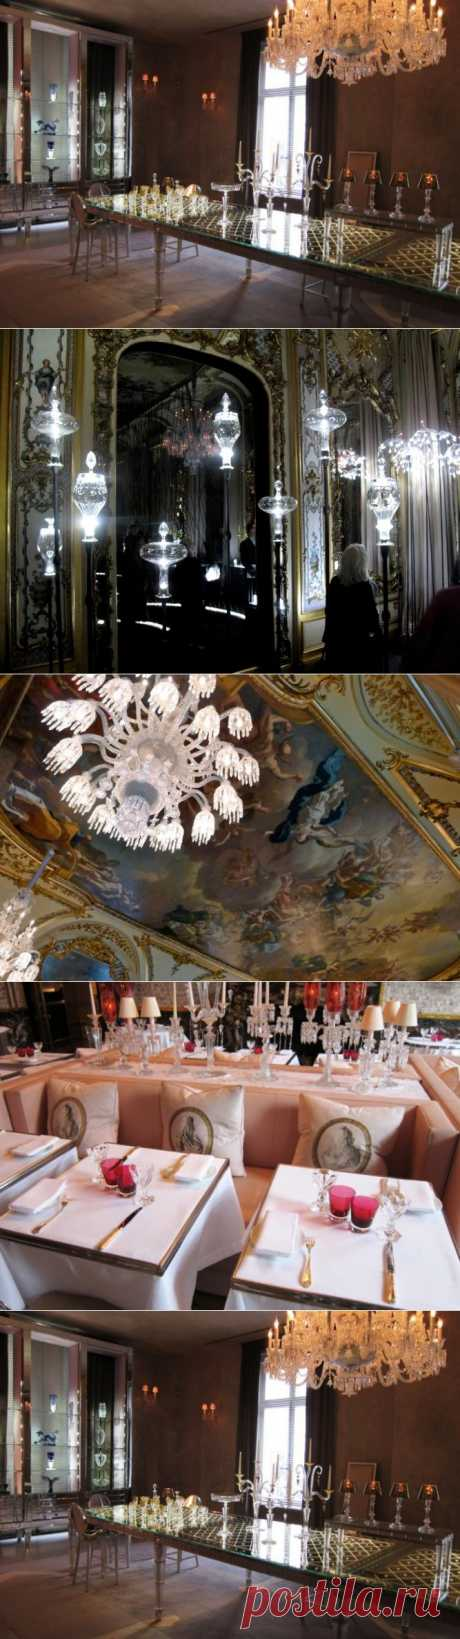 Luxury of the real palace - the museum of crystal of the Baccara.